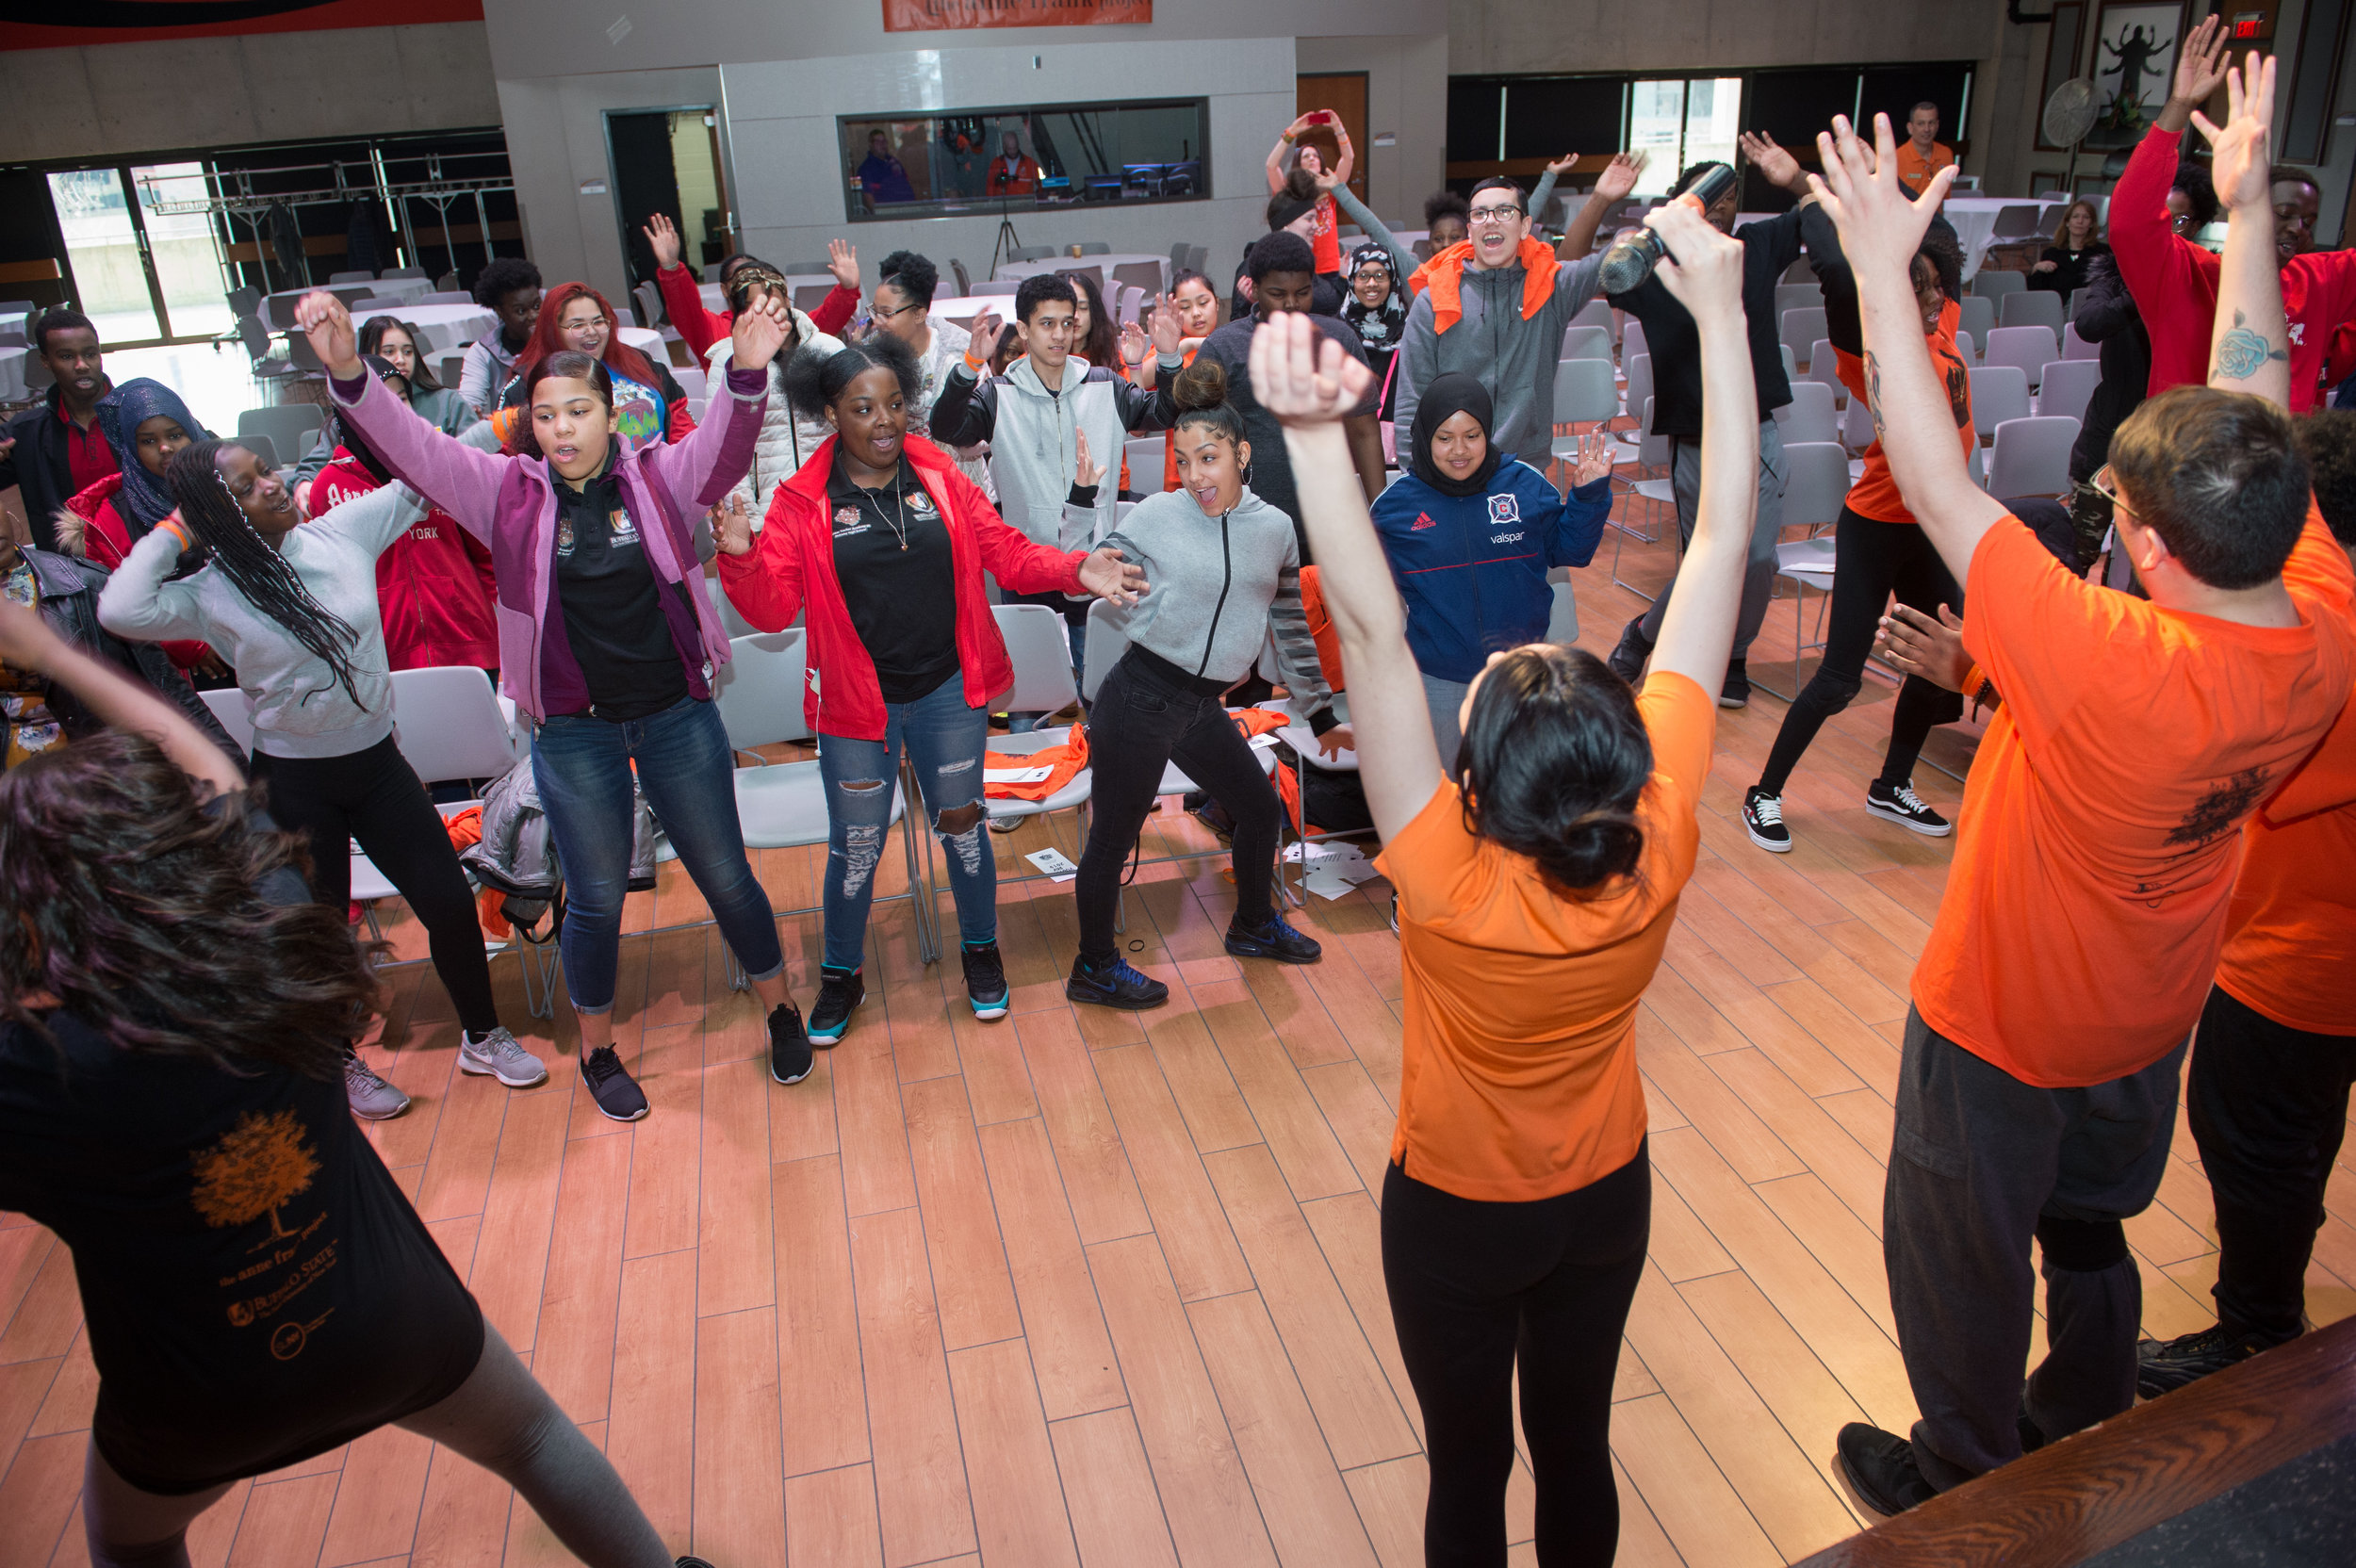 Buffalo State college students lead high schoolers through a kinesthetic post-performance workshop to process the theme of the play.